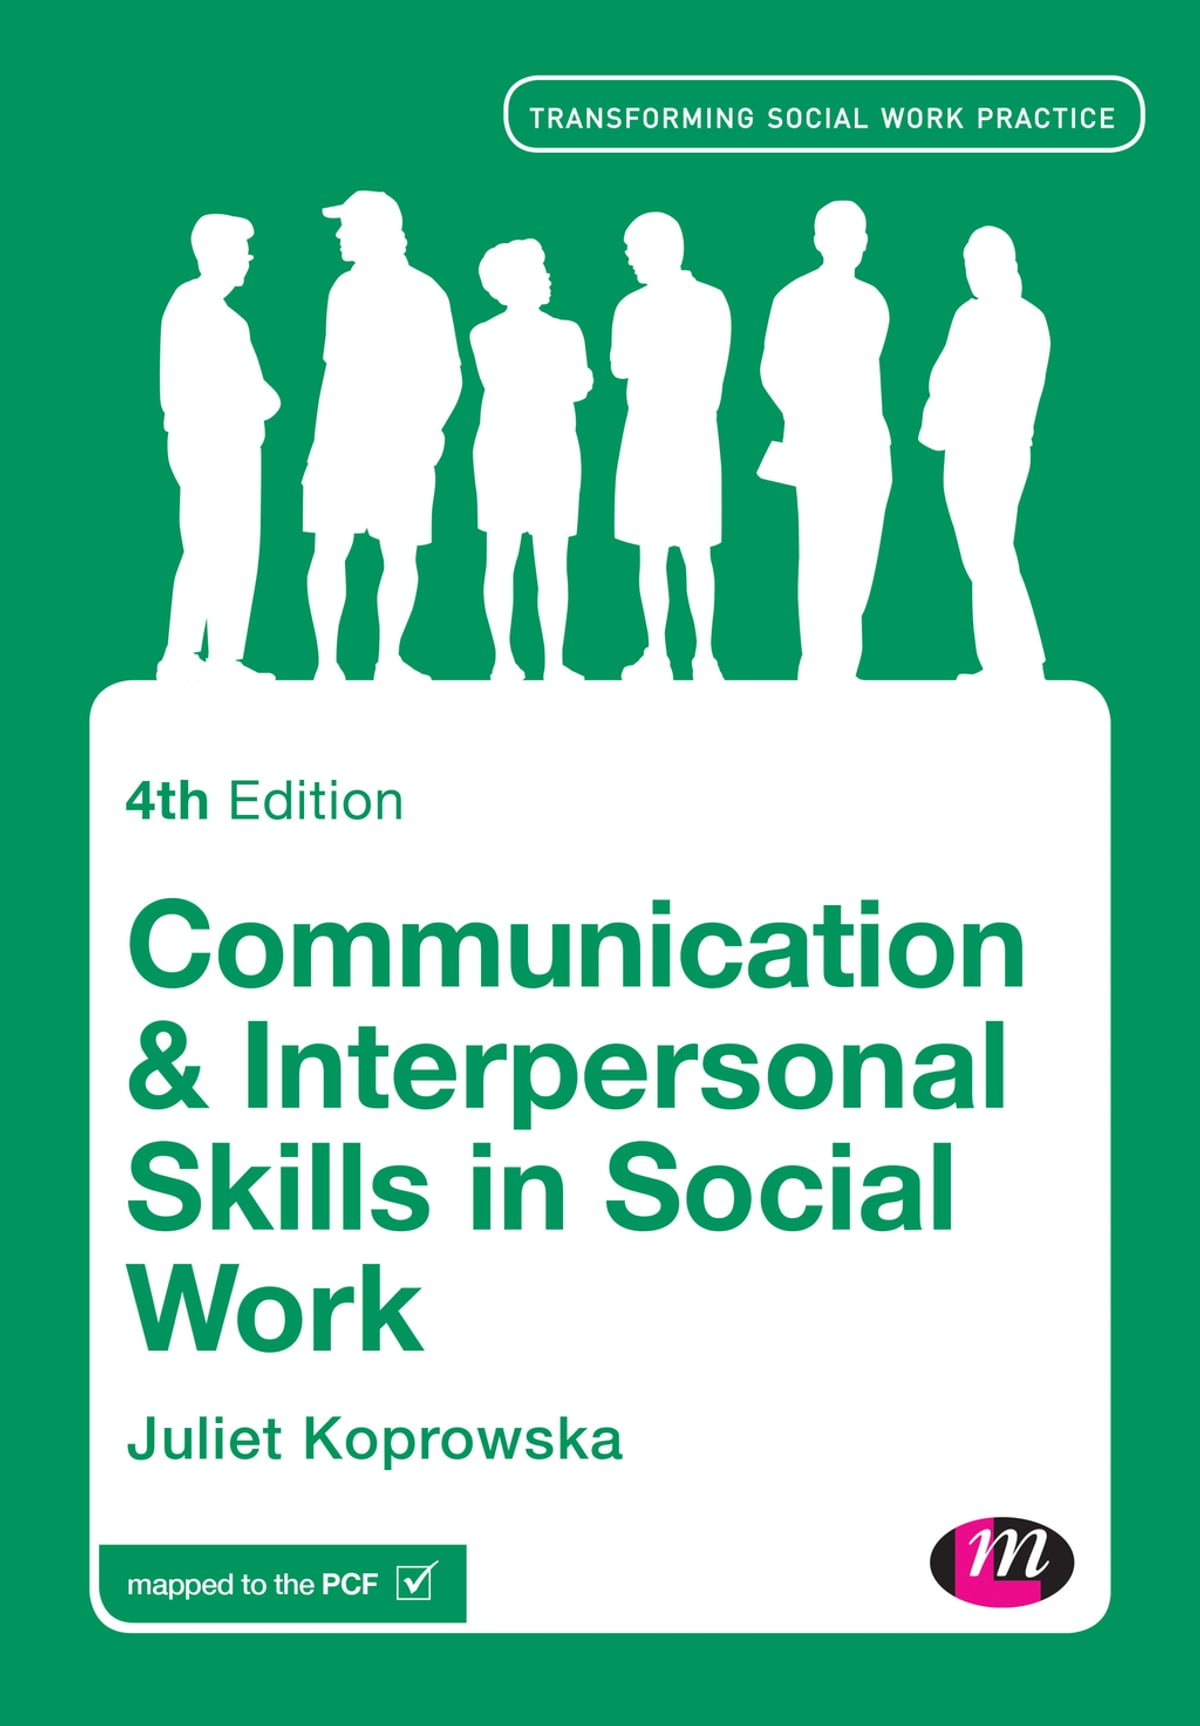 communication and interpersonal skills in social work ebook by communication and interpersonal skills in social work ebook by juliet koprowska 9781473905481 kobo